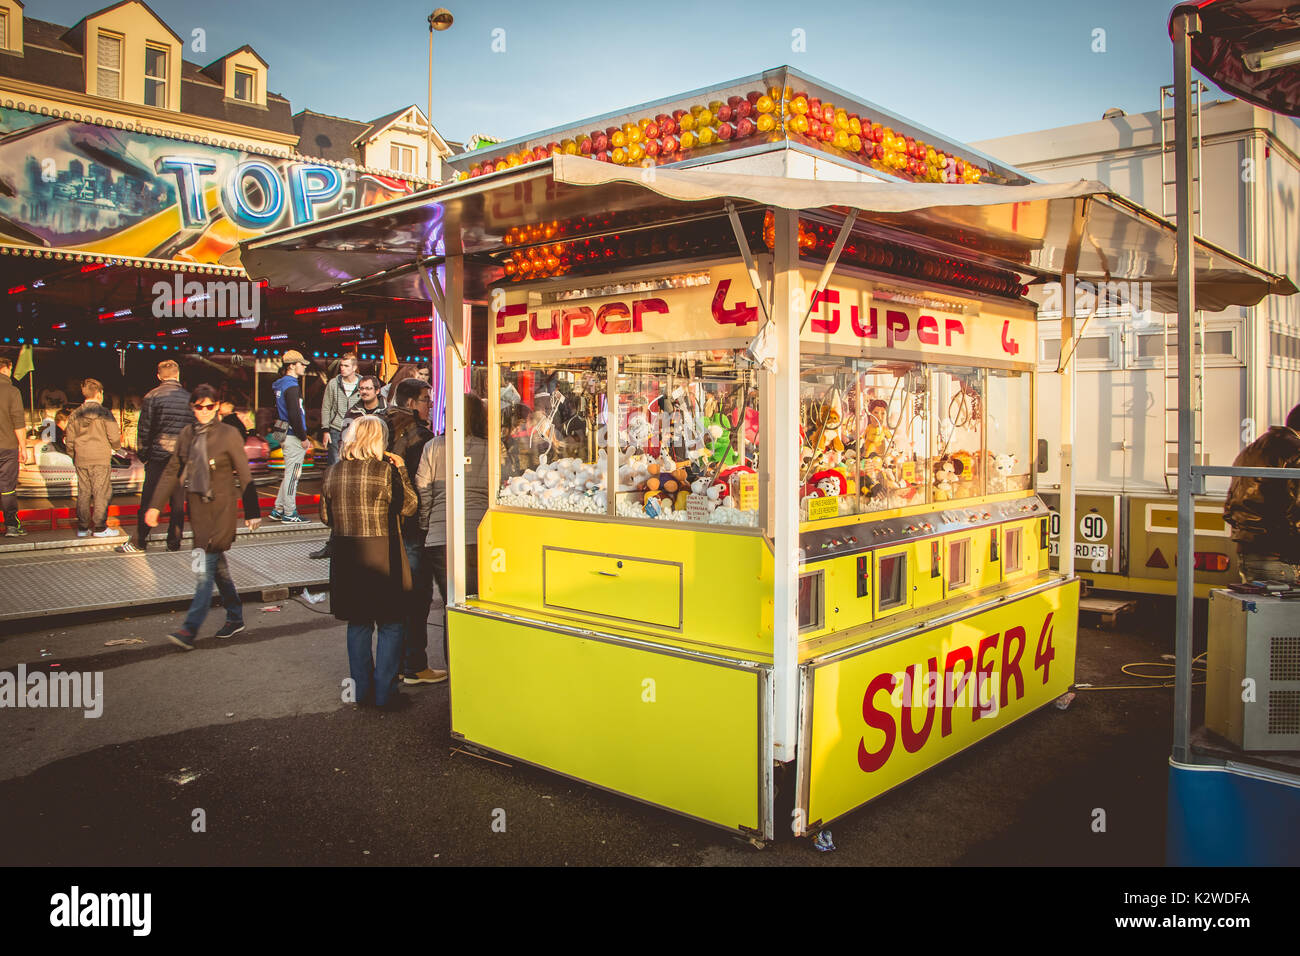 SABLES D OLONNE, FRANCE - November 27, 2016: In a traditional funfair a claw machine allows to win stuffed animals and souvenirs - Stock Image